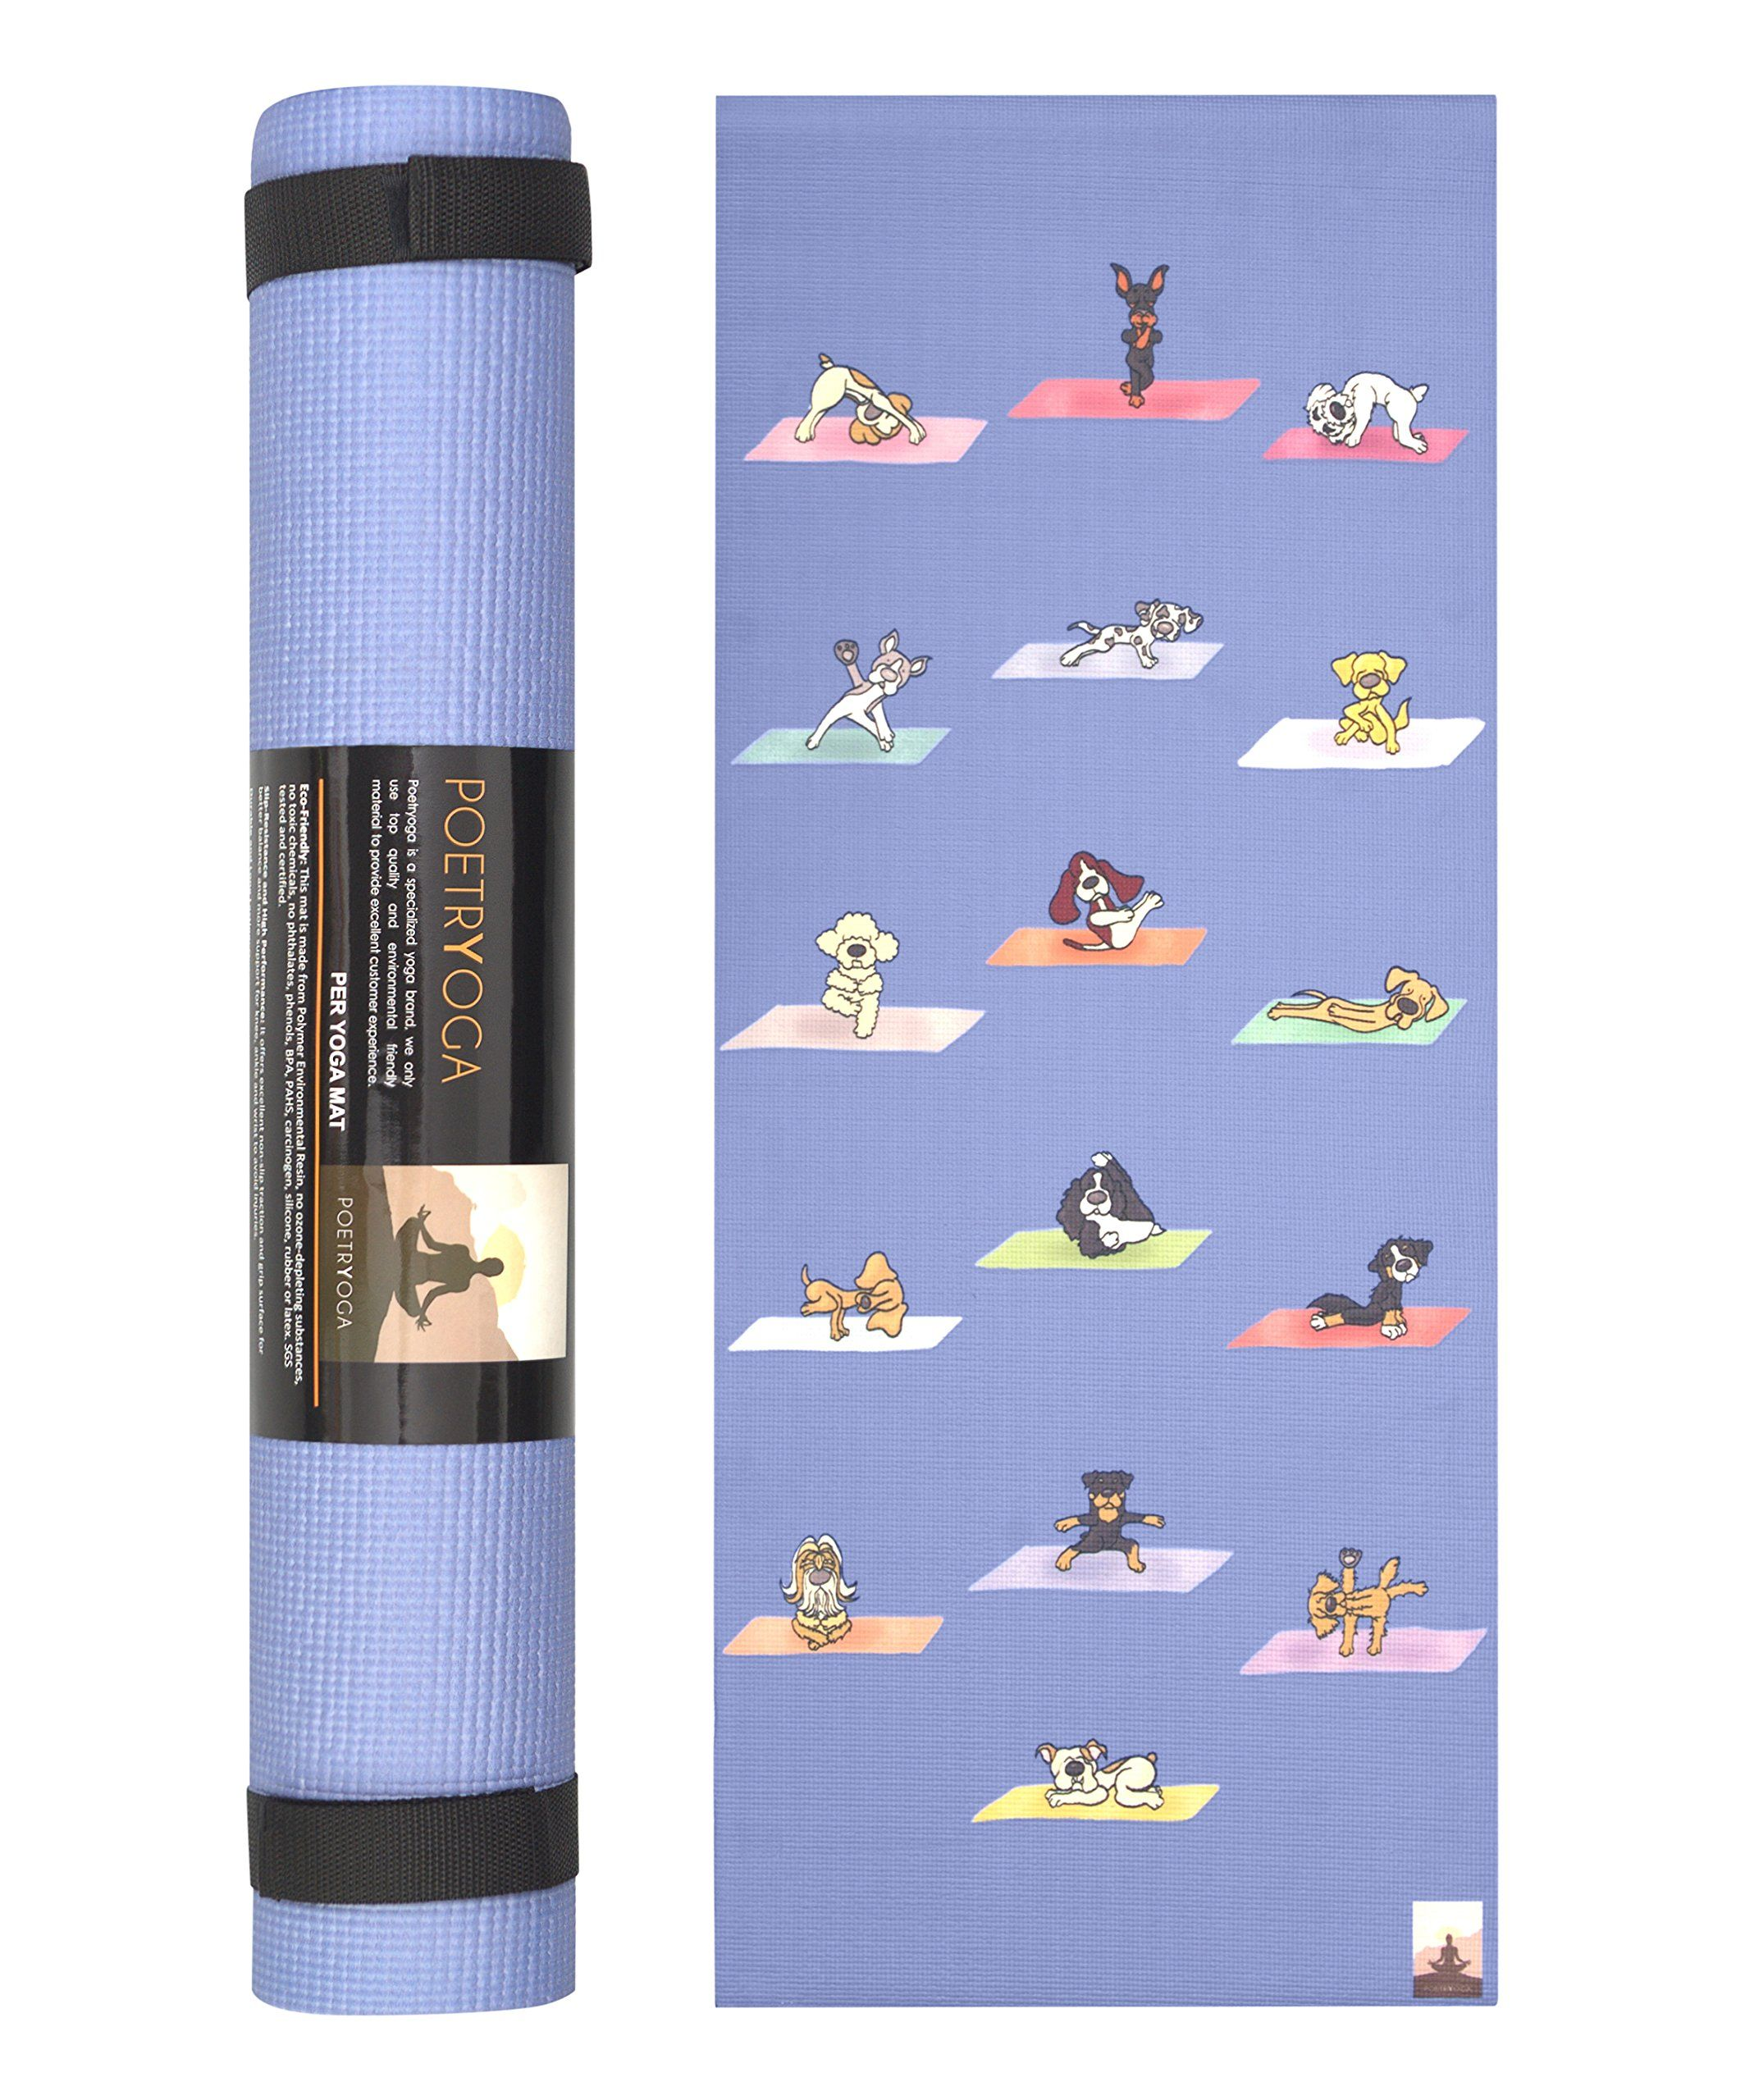 mat with strap thick mats brands ip black fitness com carrying yoga wakeman extra walmart